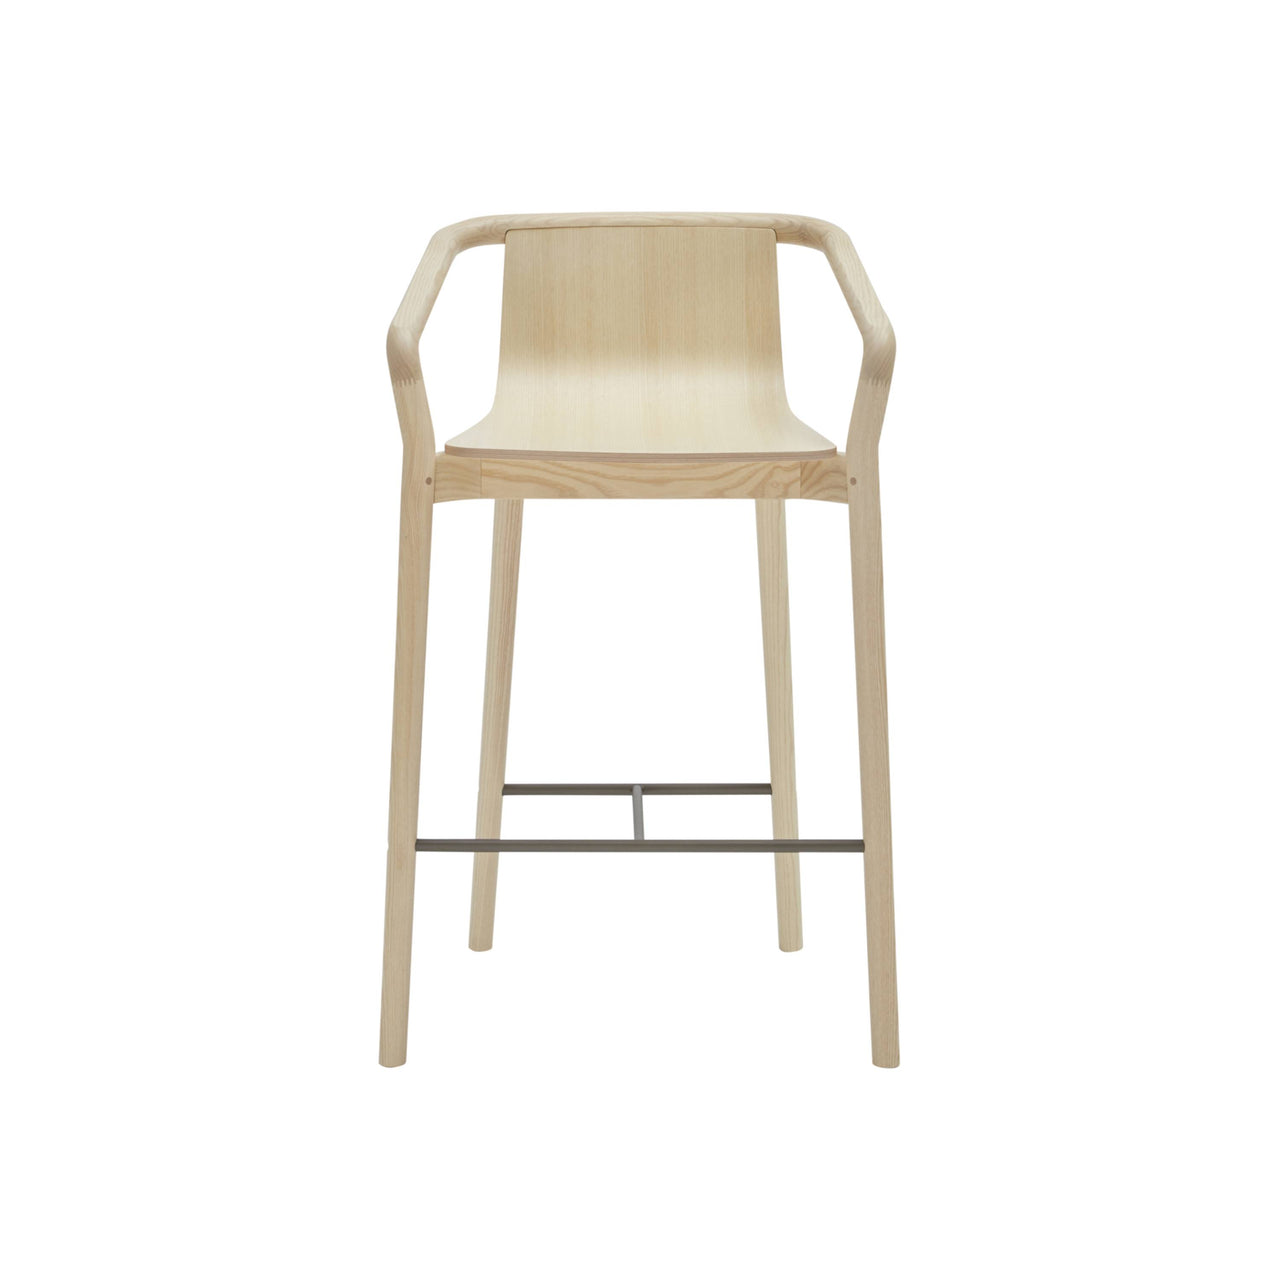 Thomas Bar + Counter Stool: Counter + Natural Stained Ash + Pewter